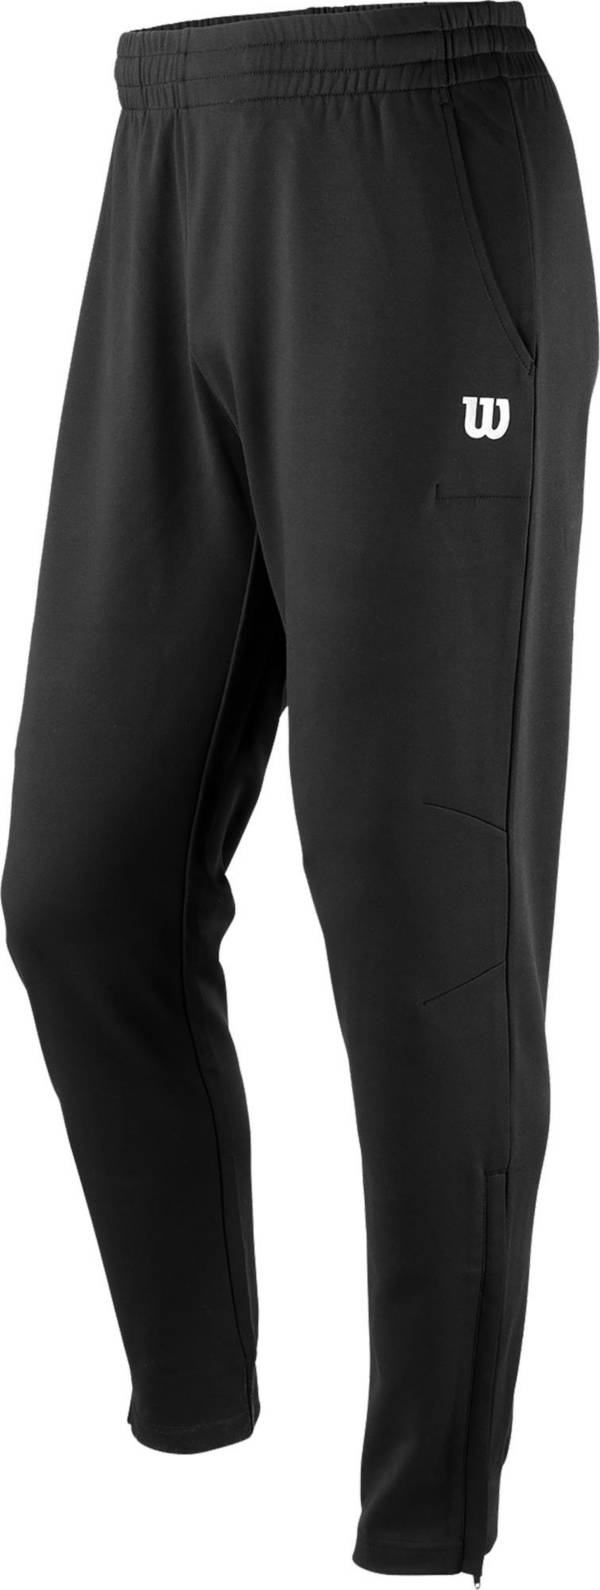 Wilson Men's Training Tennis Pants product image